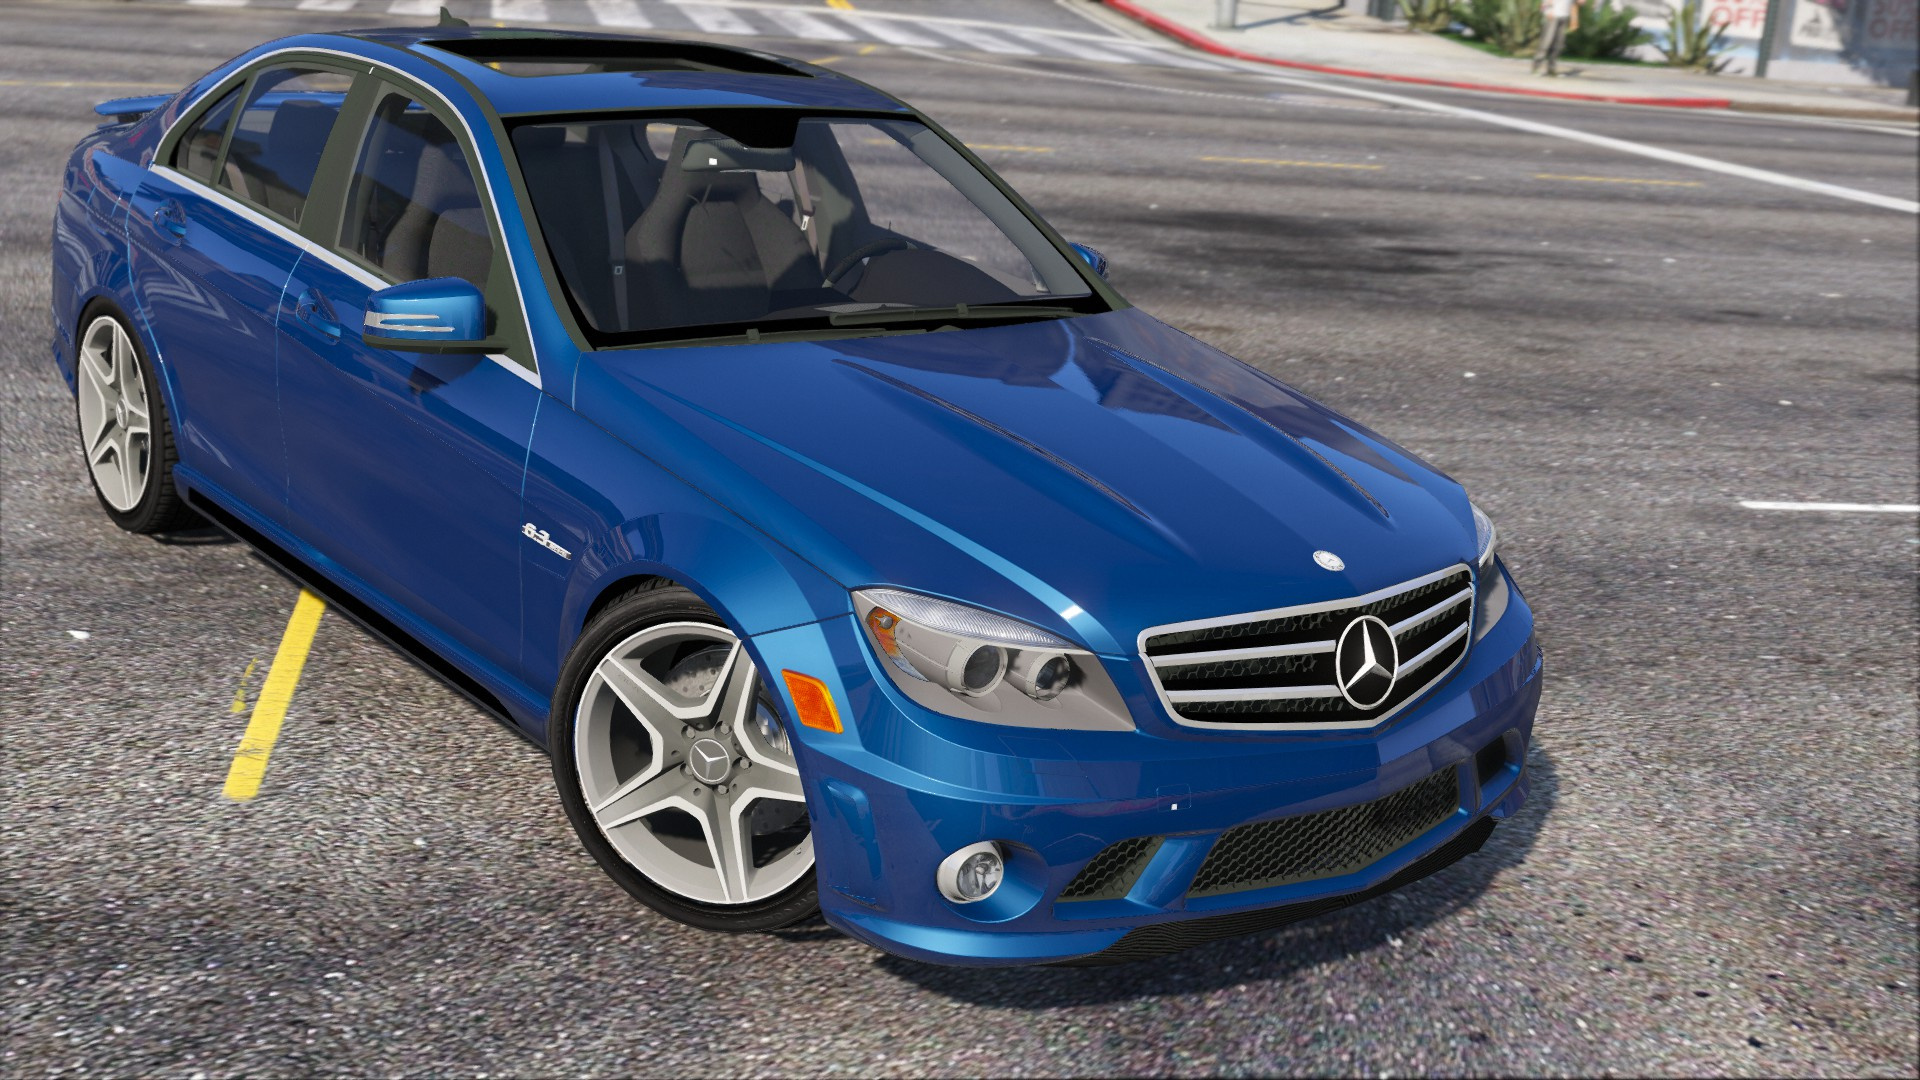 Mercedes Benz C63 AMG GTA5 Mods